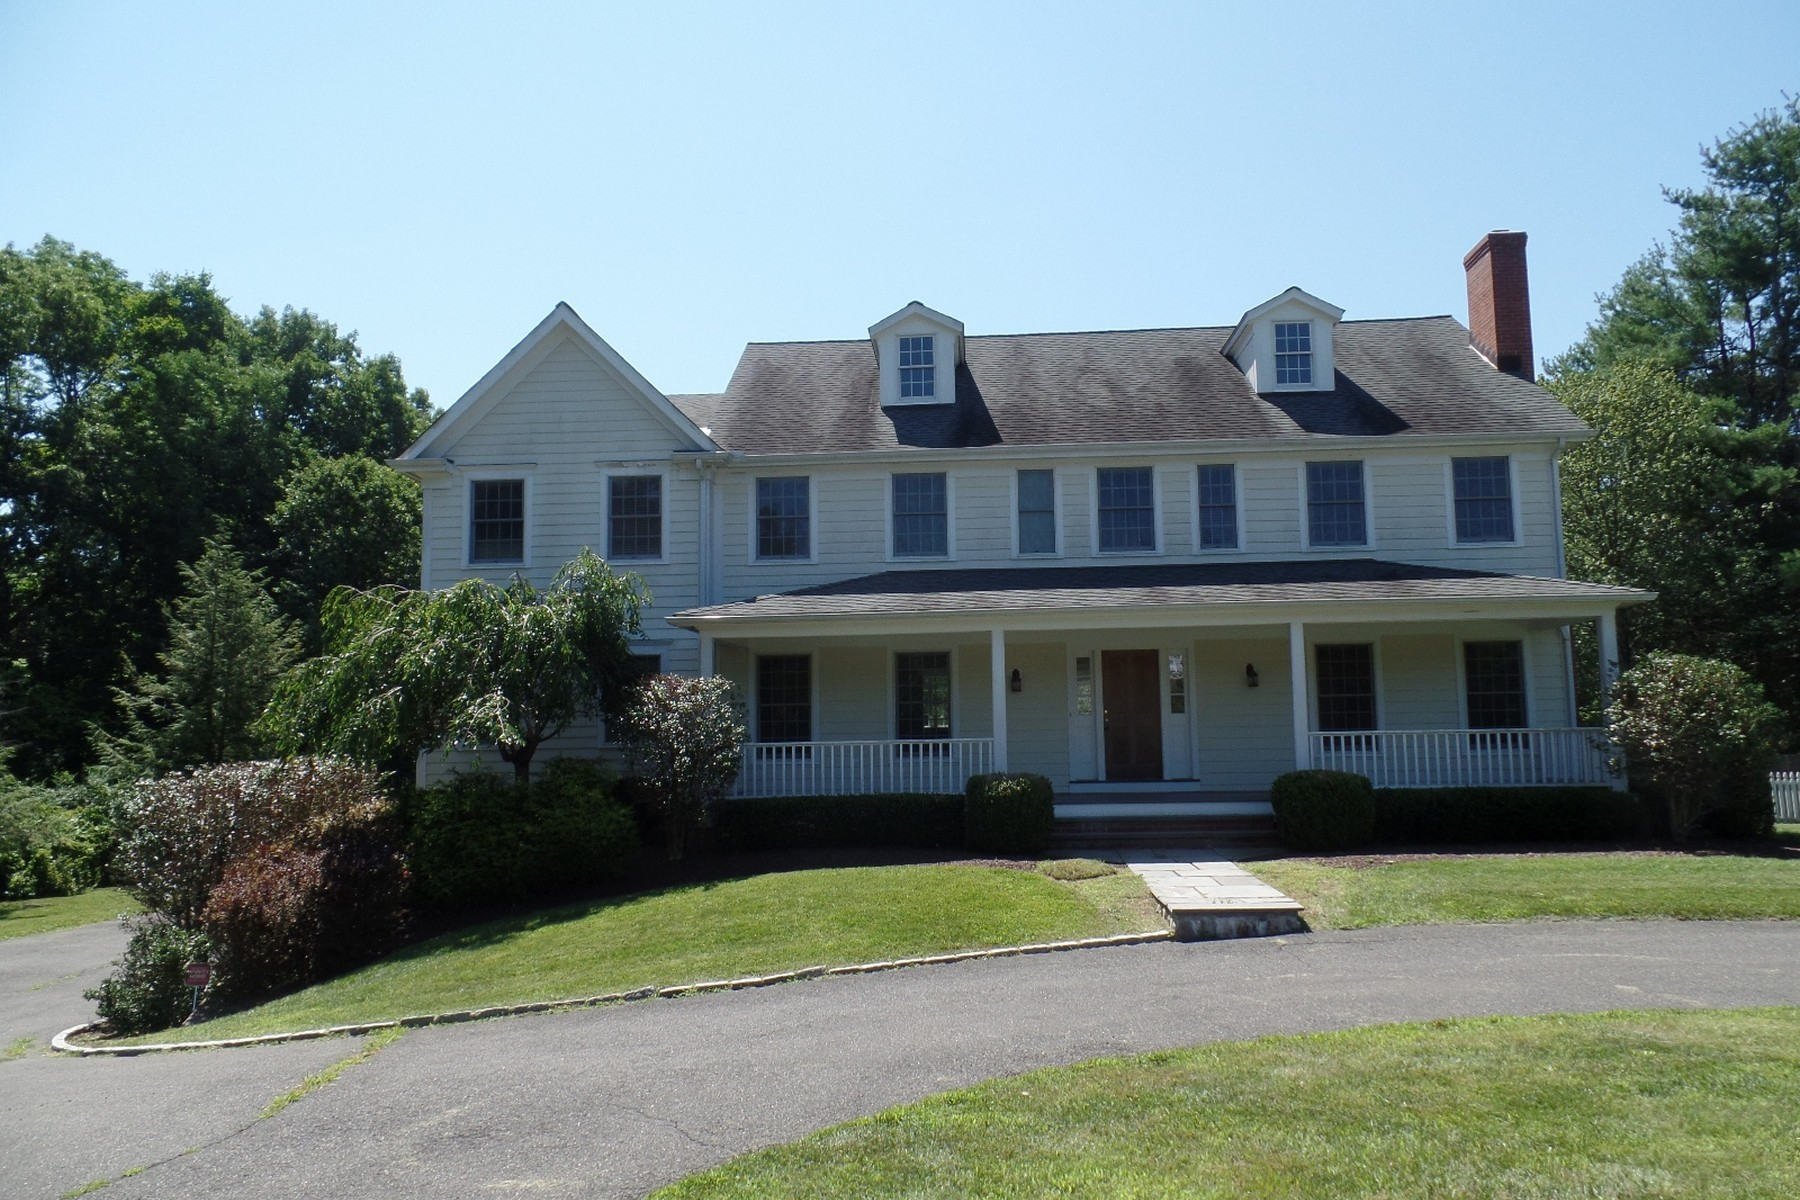 Vivienda unifamiliar por un Venta en Wonderful Eight Year Old Farmhouse with Amazing Details 31 Overlook Drive Ridgefield, Connecticut 06877 Estados Unidos